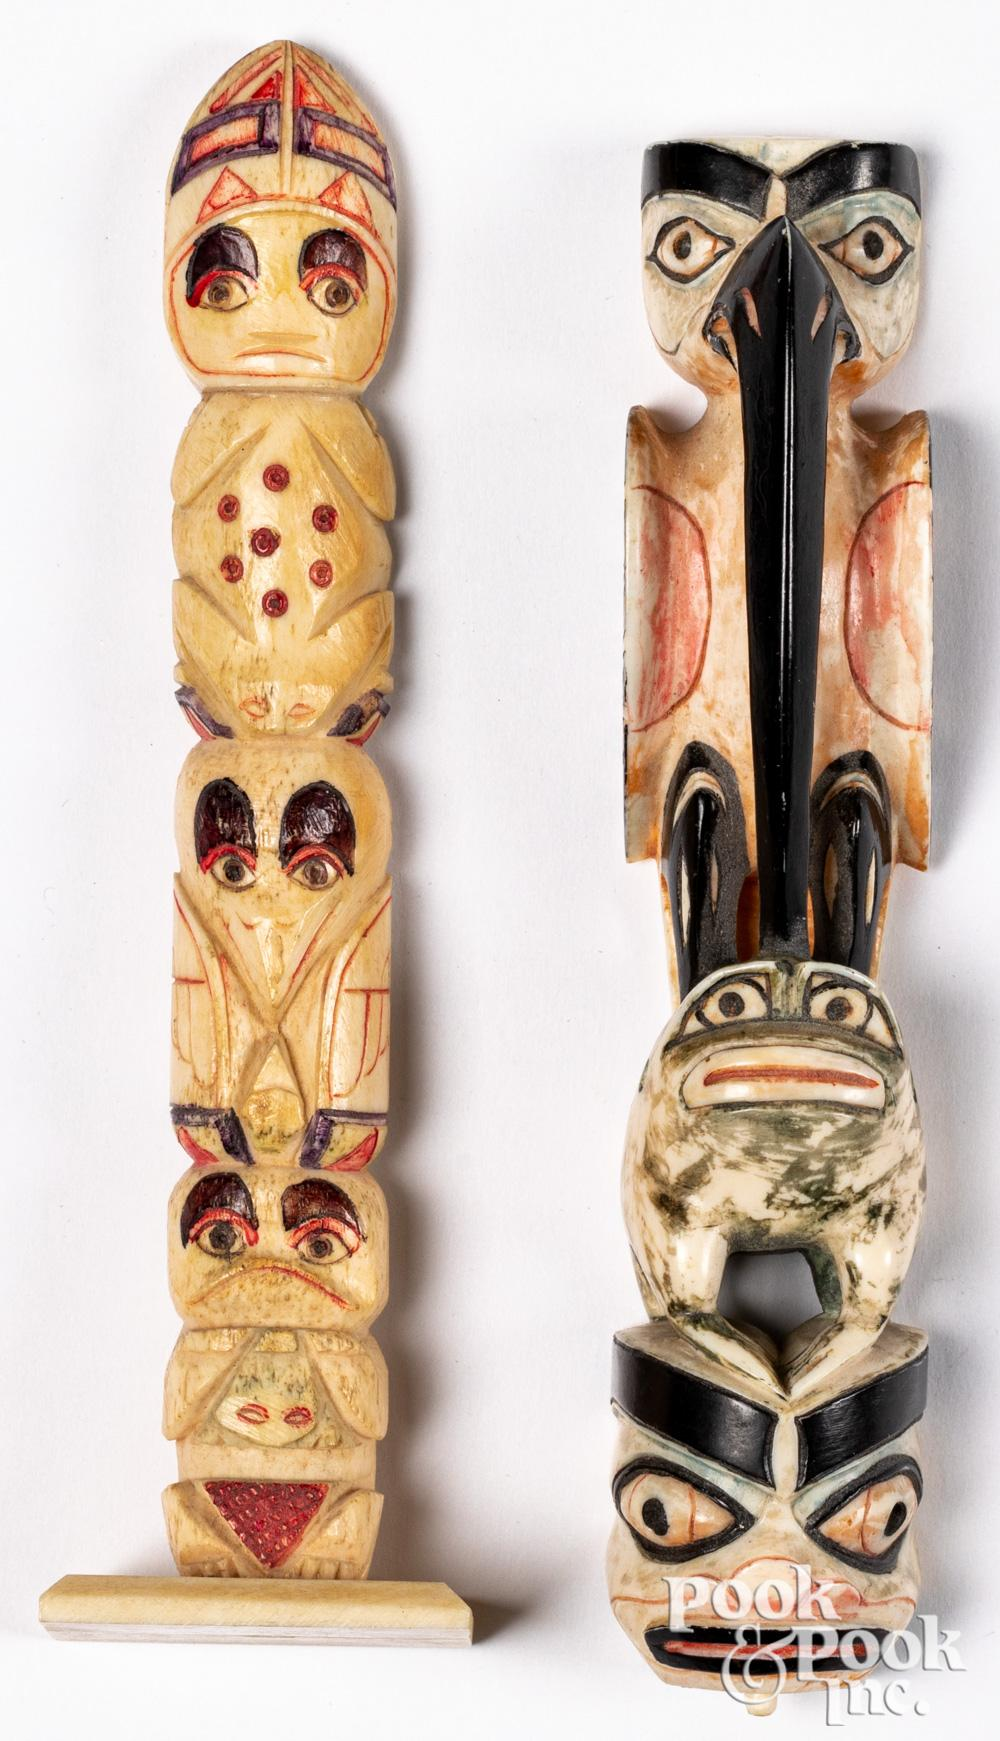 Two Pacific Northwest Coast Indian totem poles